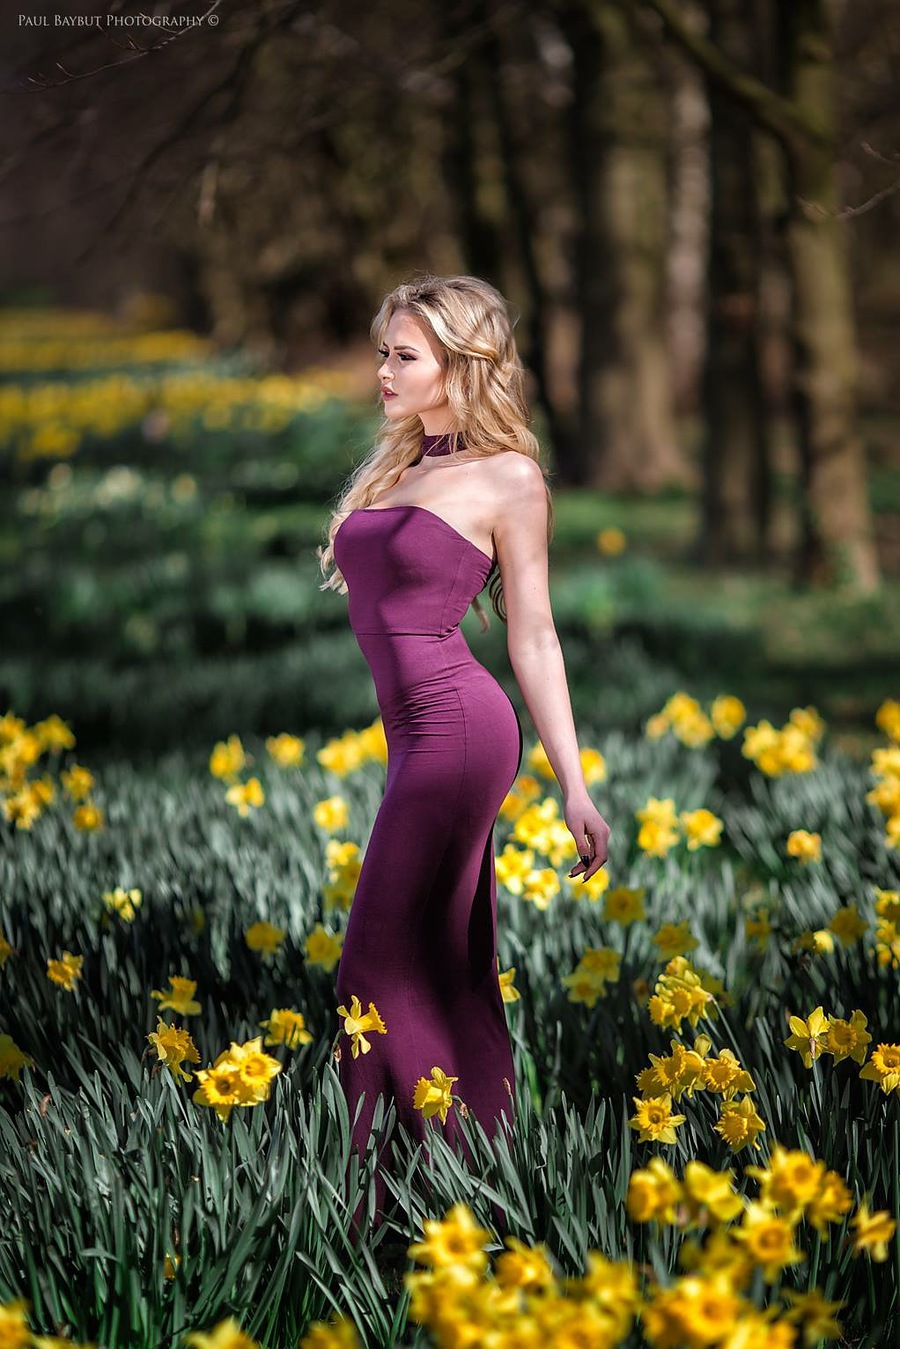 A pretty flower / Photography by Paul Baybut Photography, Model Katie Royle / Uploaded 20th May 2017 @ 08:40 AM